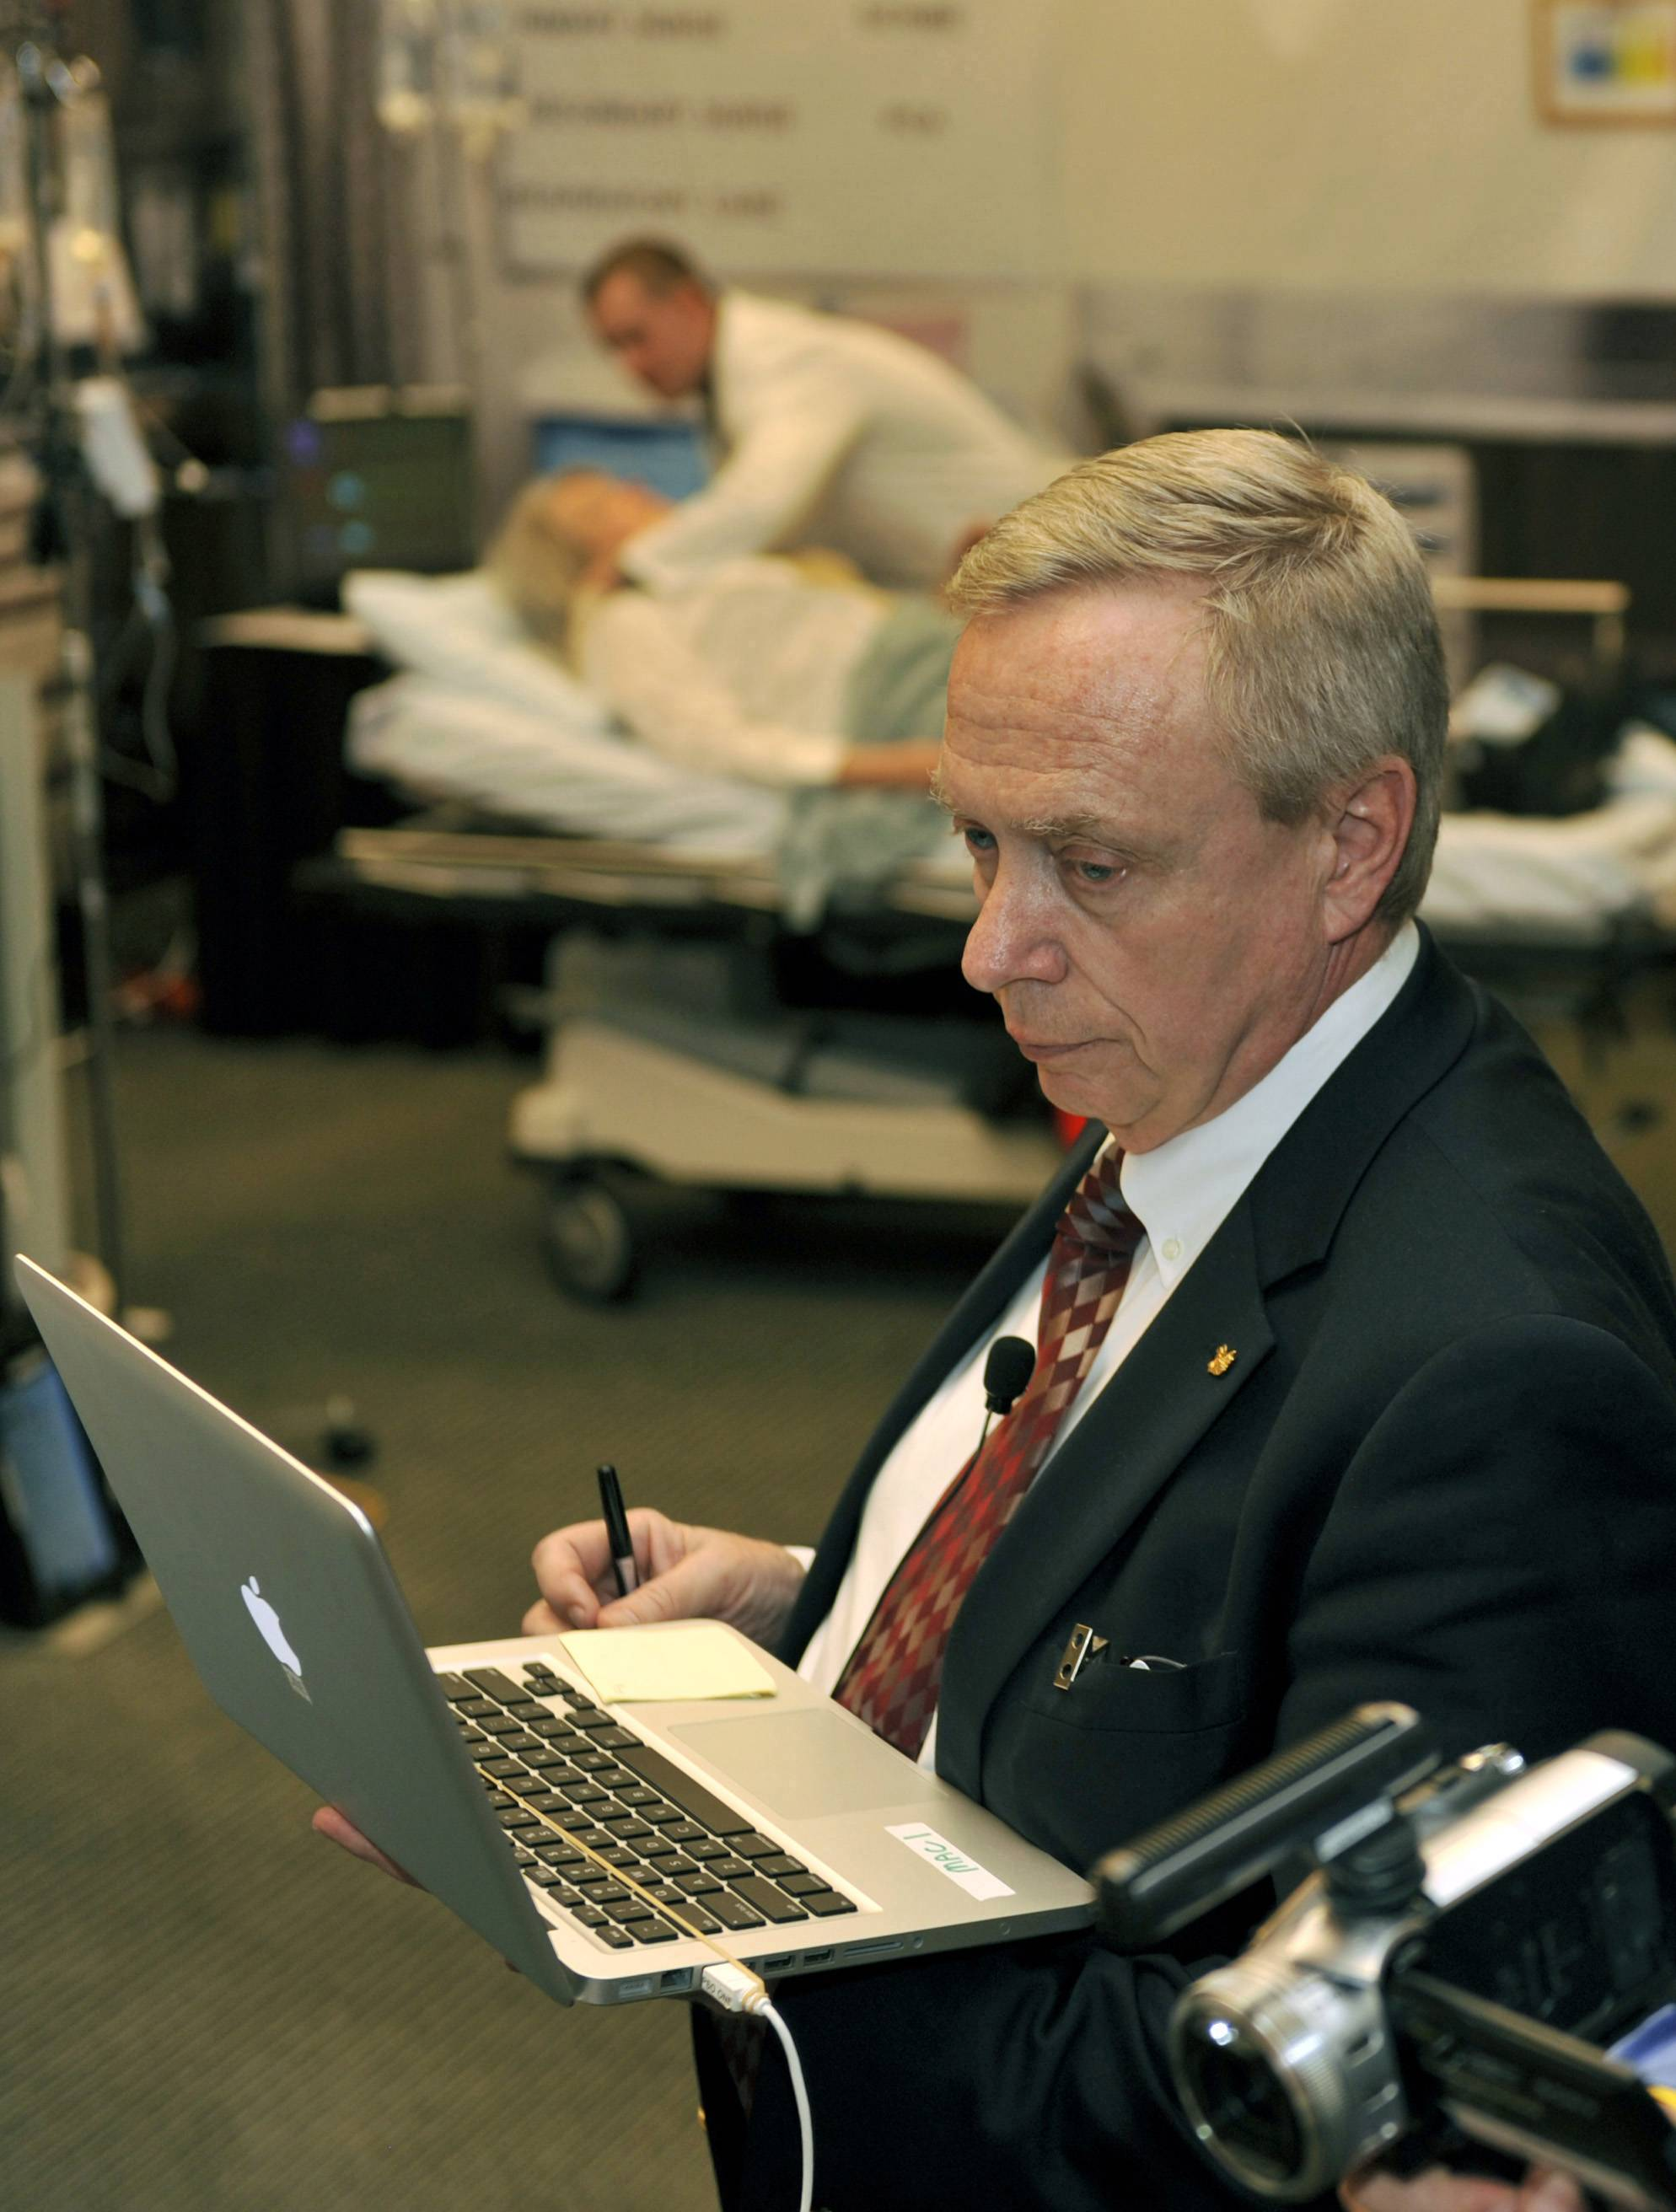 In this March 14, 2010 file photo, William Hamman watches data on a computer as he supervises doctors during a cardiology simulation at the Georgia World Congress Center in Atlanta. Hamman, an airline captain who lives in Michigan, claimed to be a cardiologist and trained other doctors in teamwork. But he never got a medical degree.